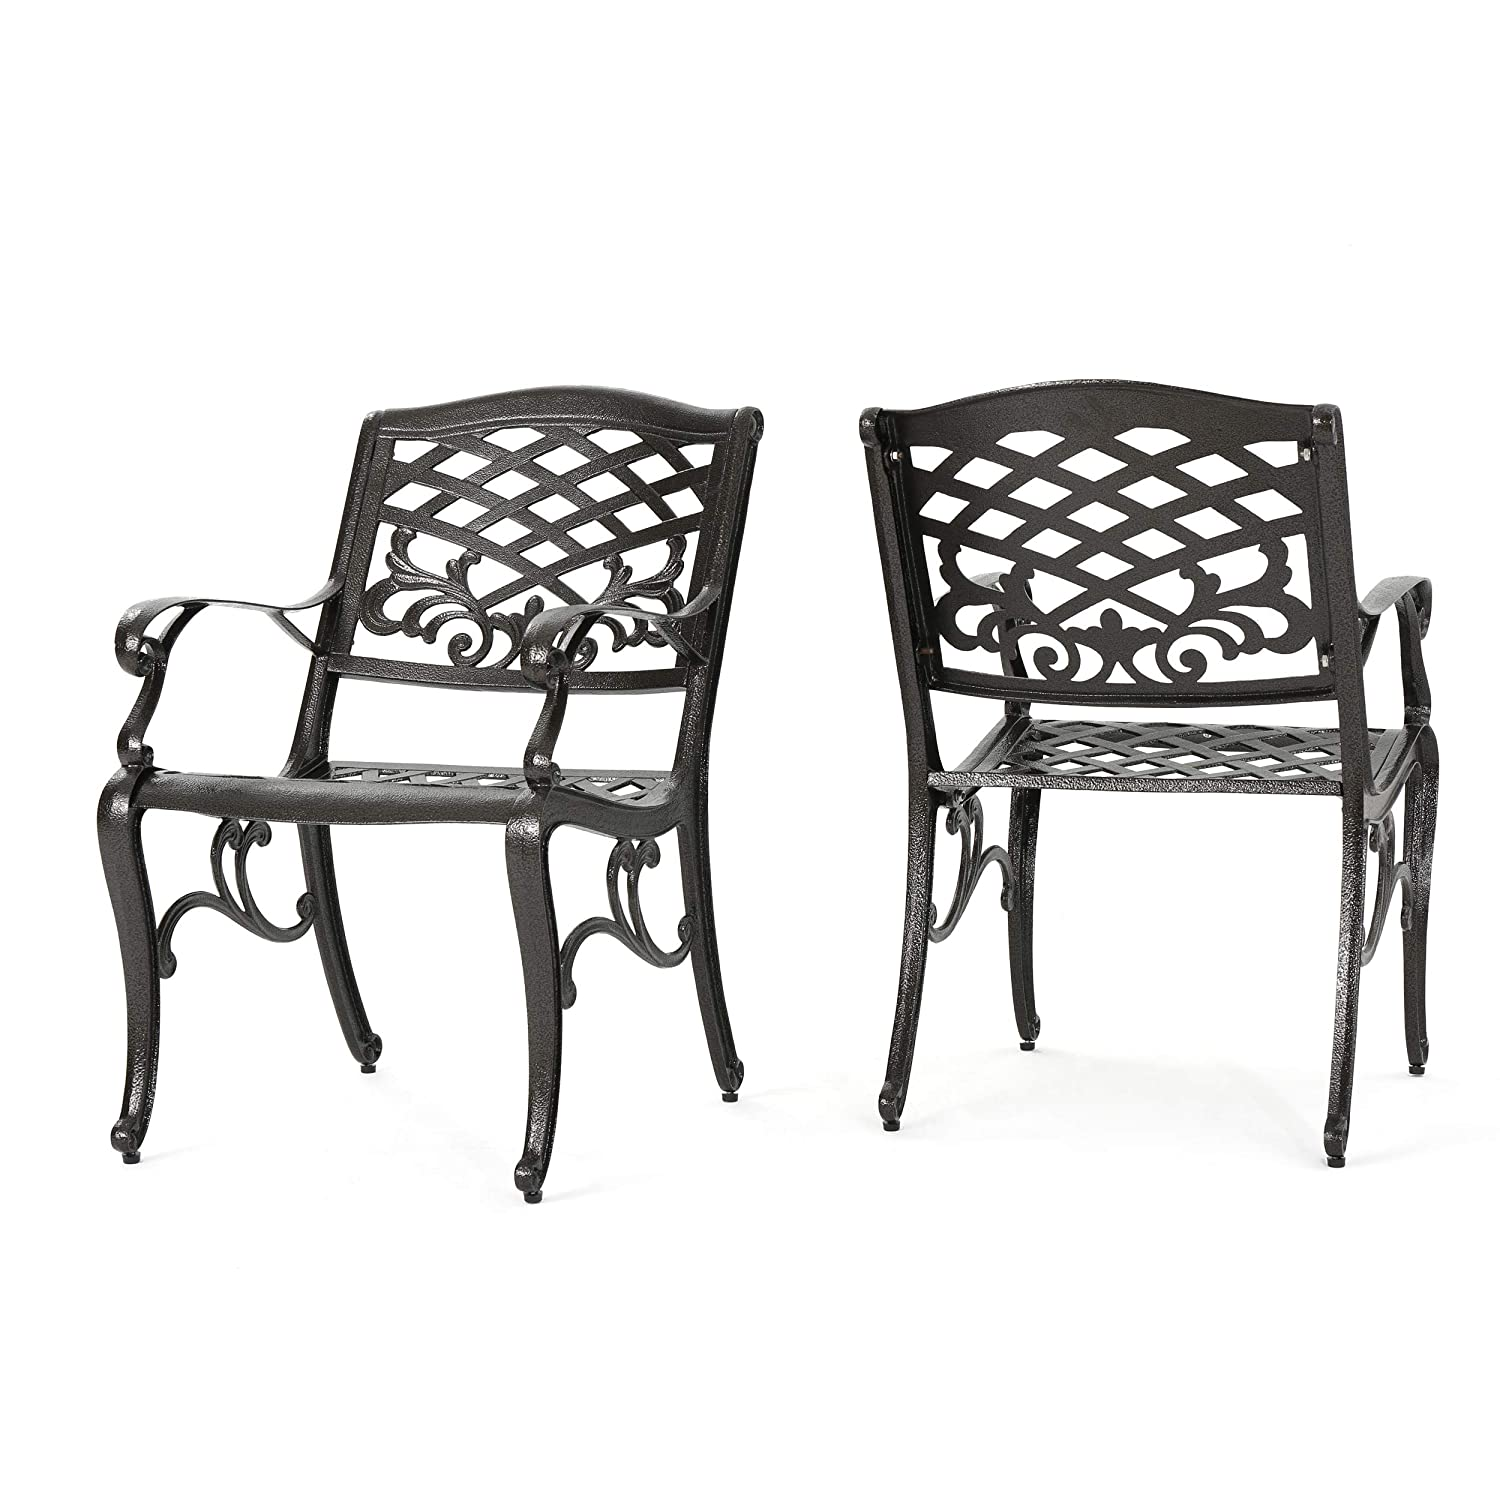 Amazon com covington cast aluminum outdoor dining chairs outdoor furniture accent 1seats for patio or porch 2 piece set garden outdoor